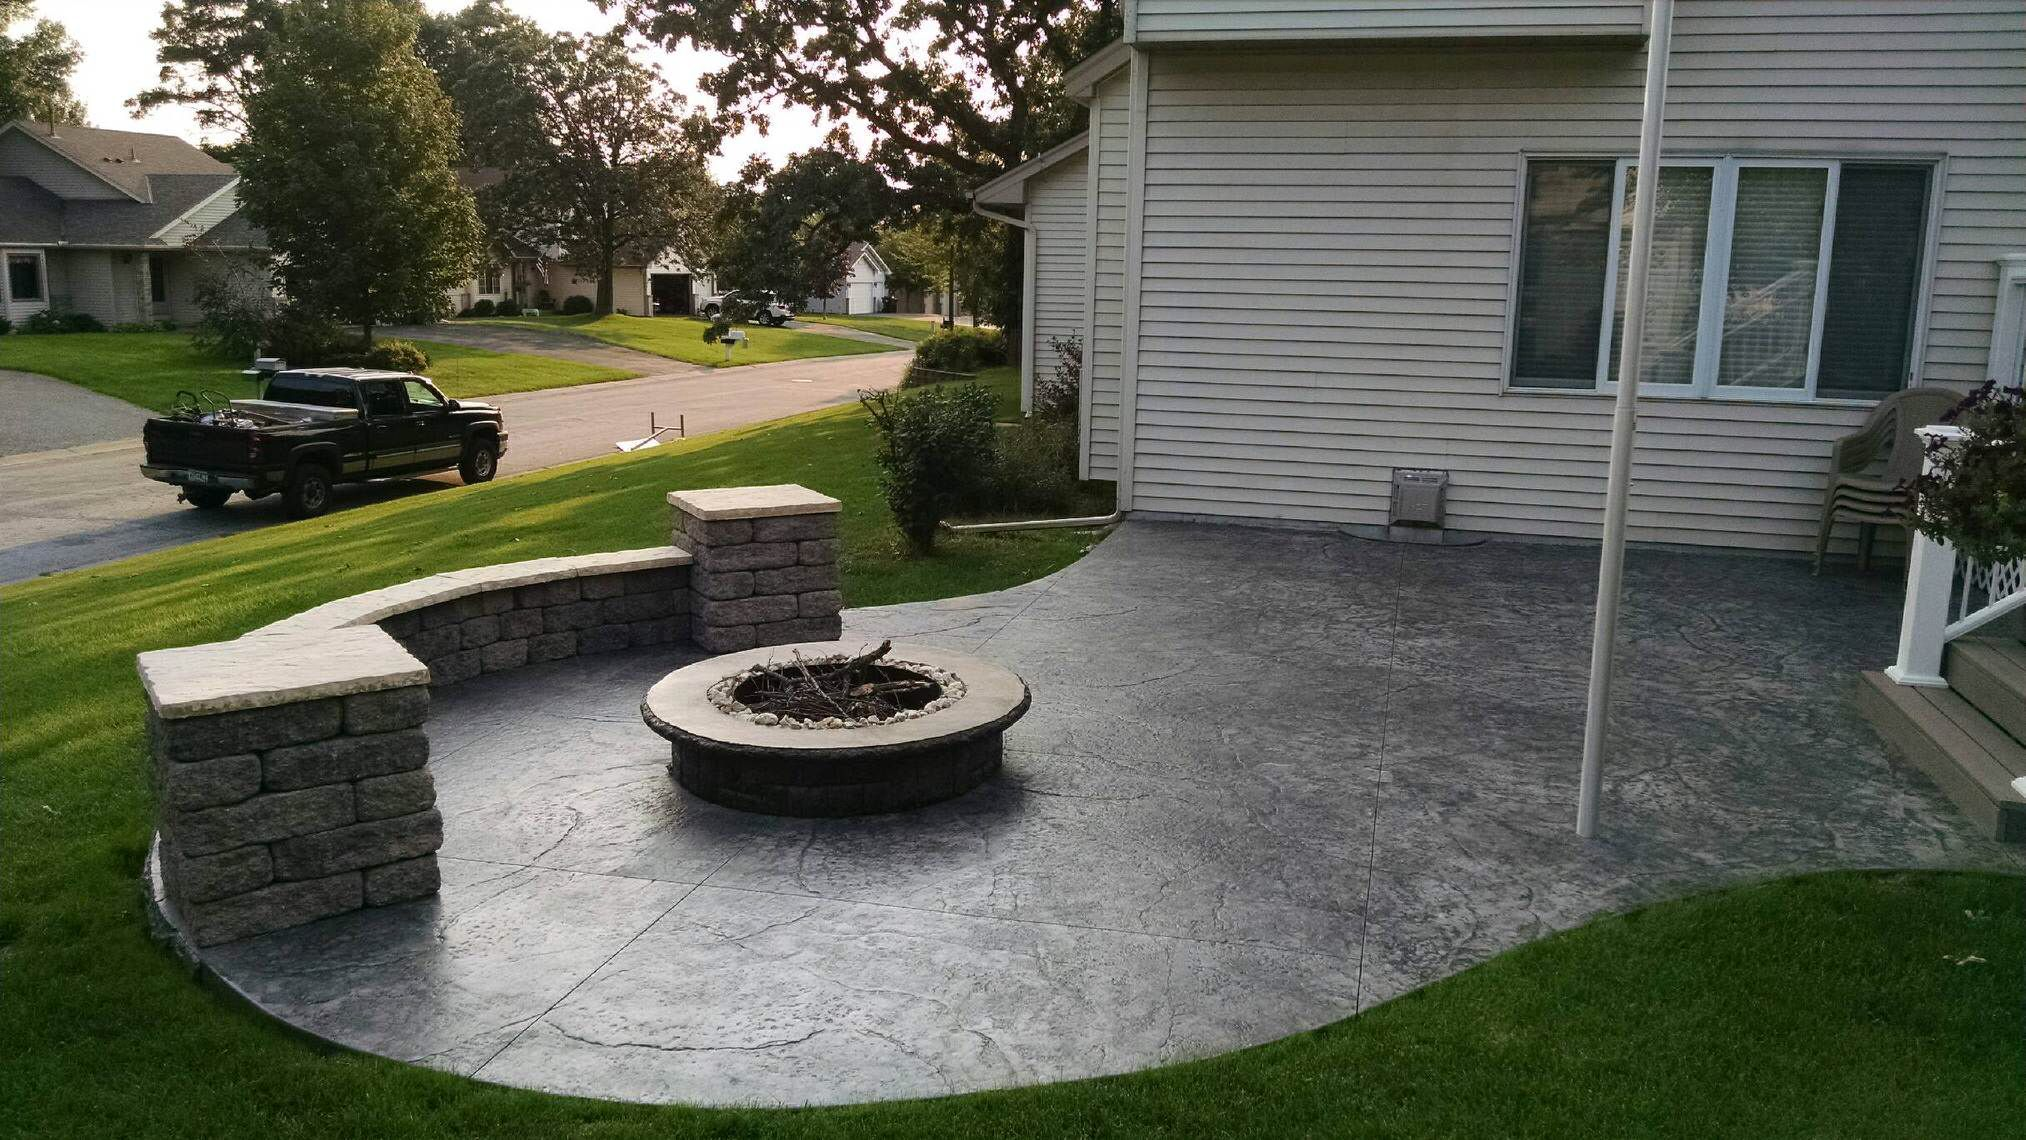 Stamped Concrete Patio With Fire Pit And Seating Walls By Sierra Concrete Arts Concrete Patio Designs Stamped Concrete Patio Outdoor Patio Designs